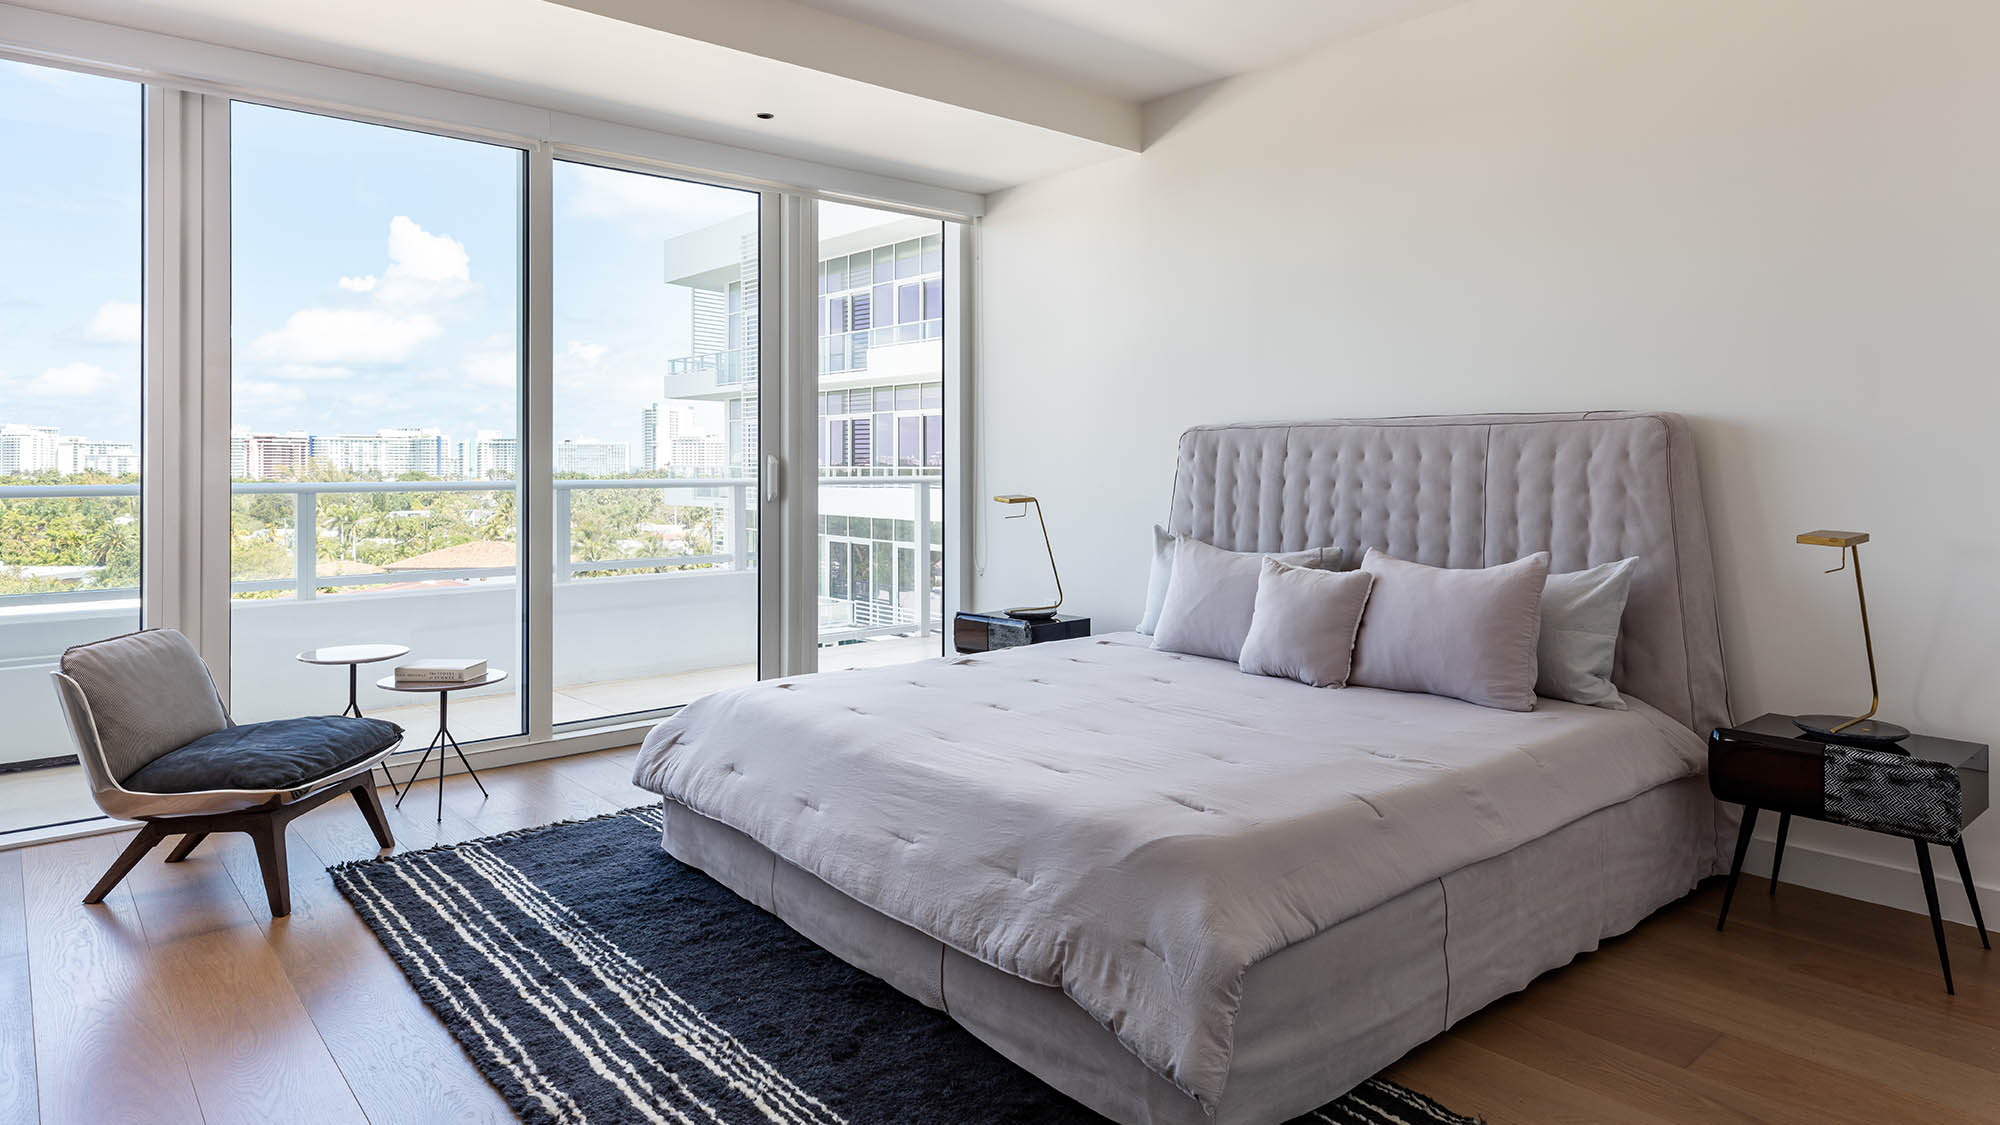 Master Bedroom at the Miami luxury condos of The Ritz-Carlton Residences, Miami Beach